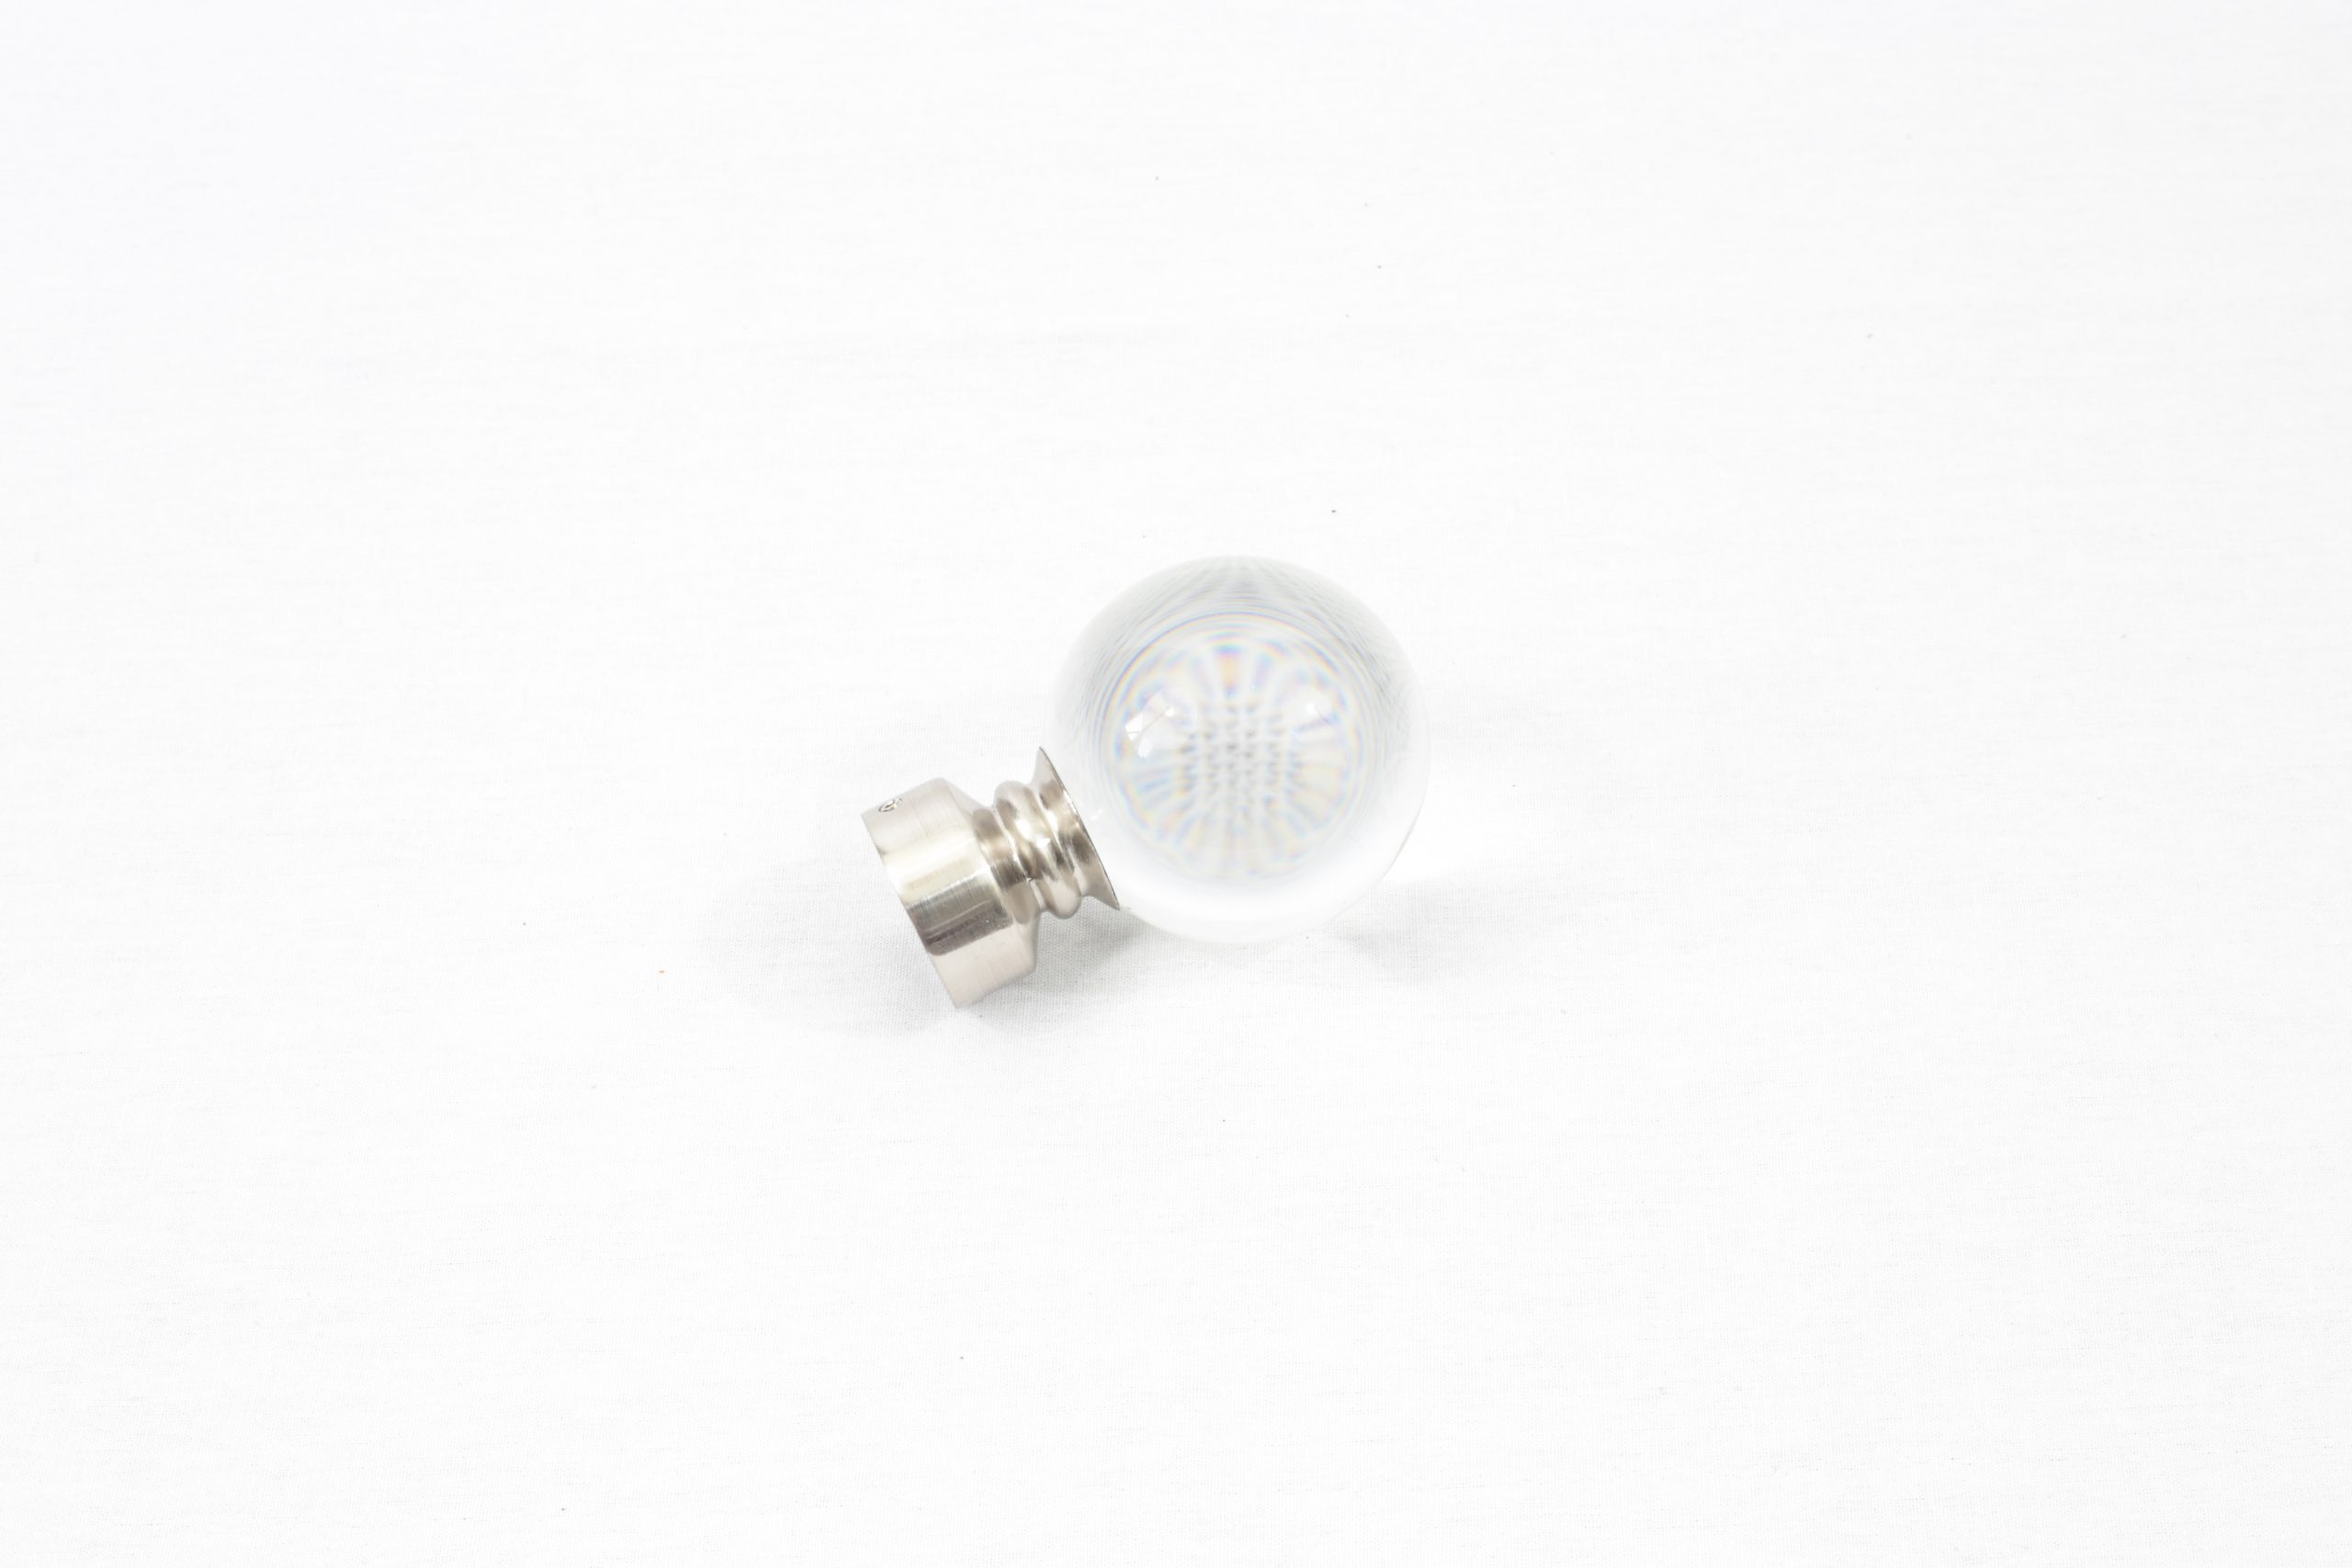 A brushed nickel glass ball finial for drapery rods